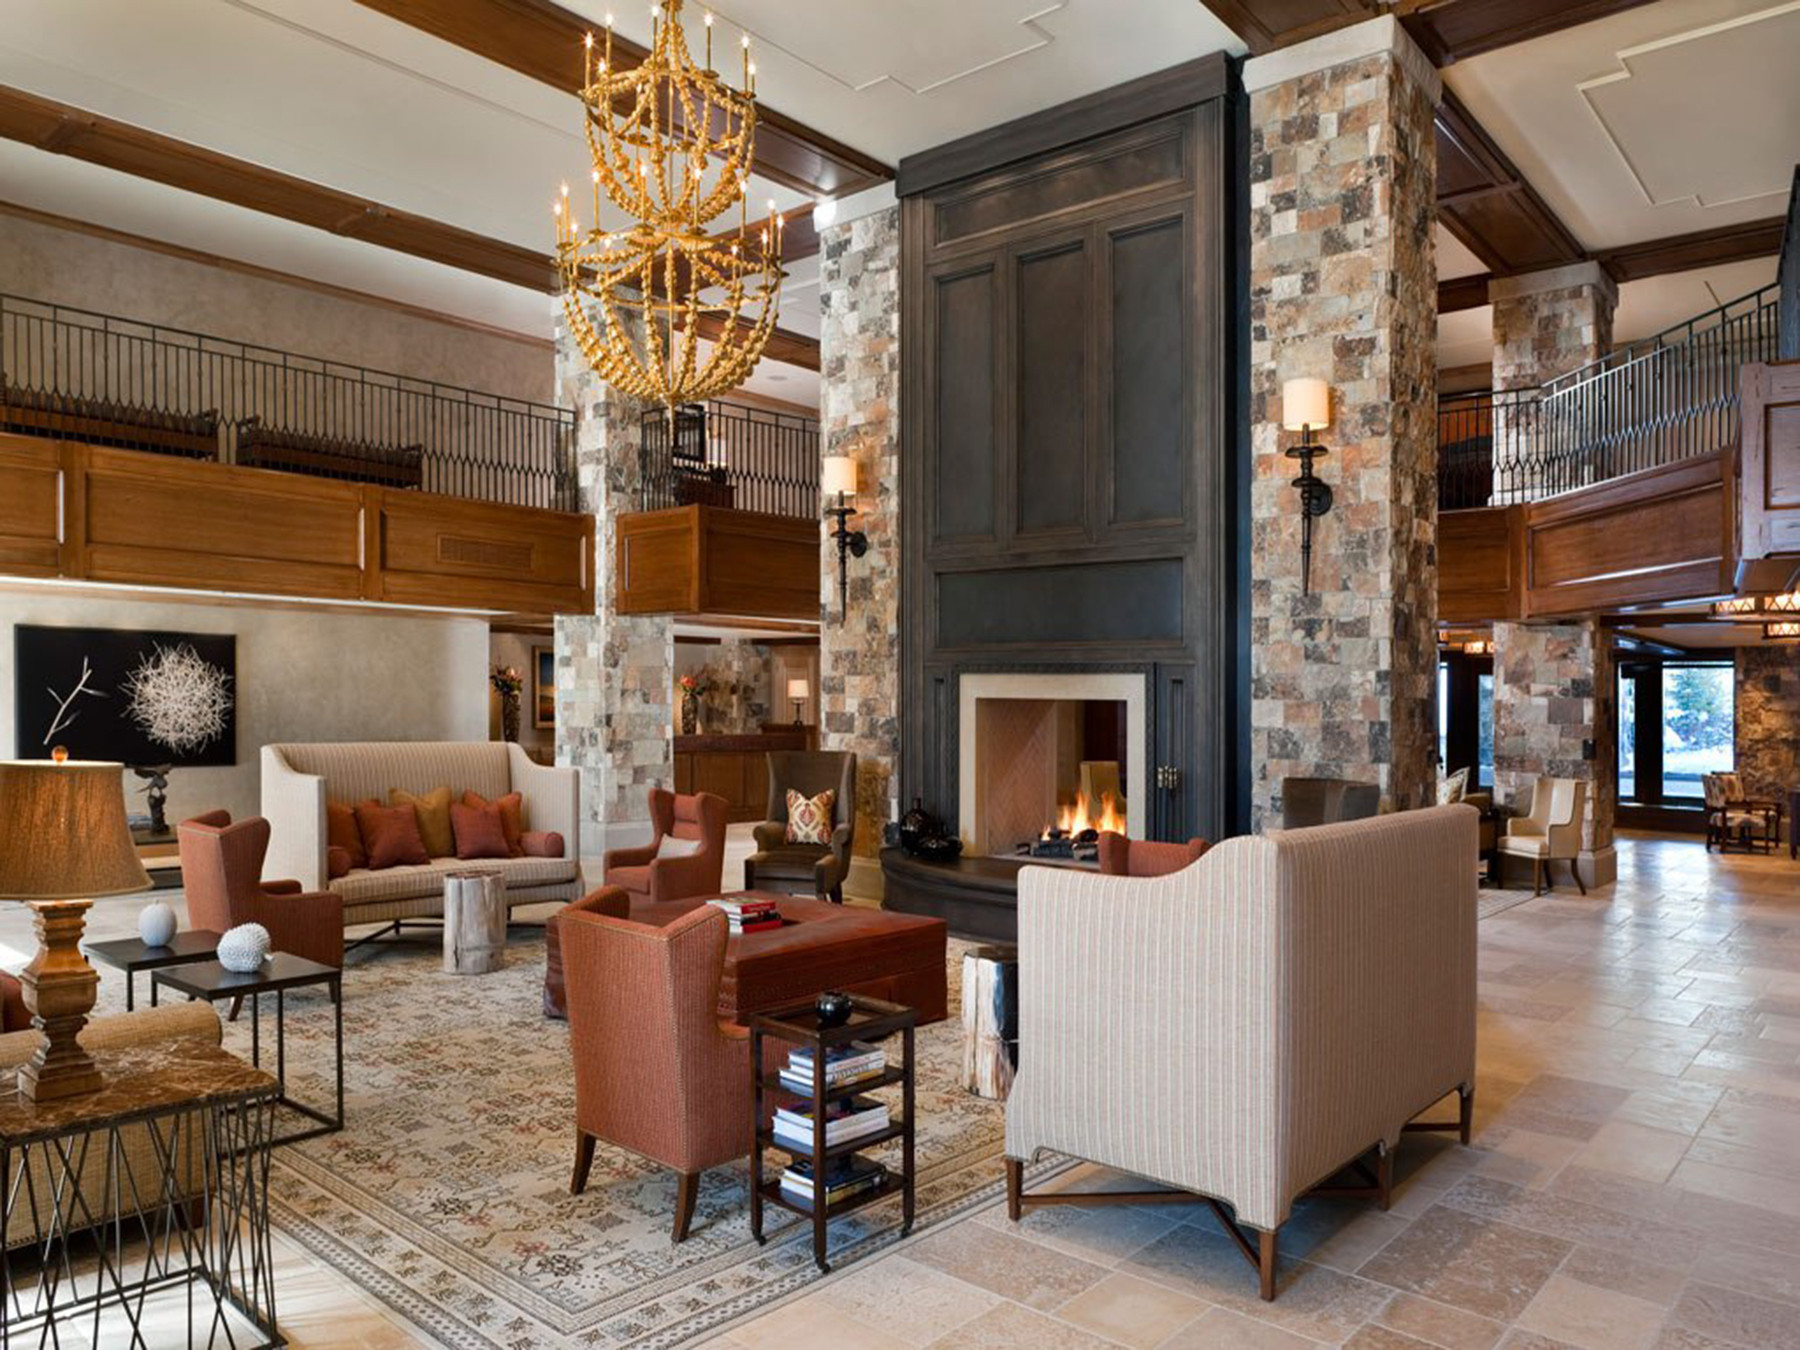 St regis for Design hotel utah